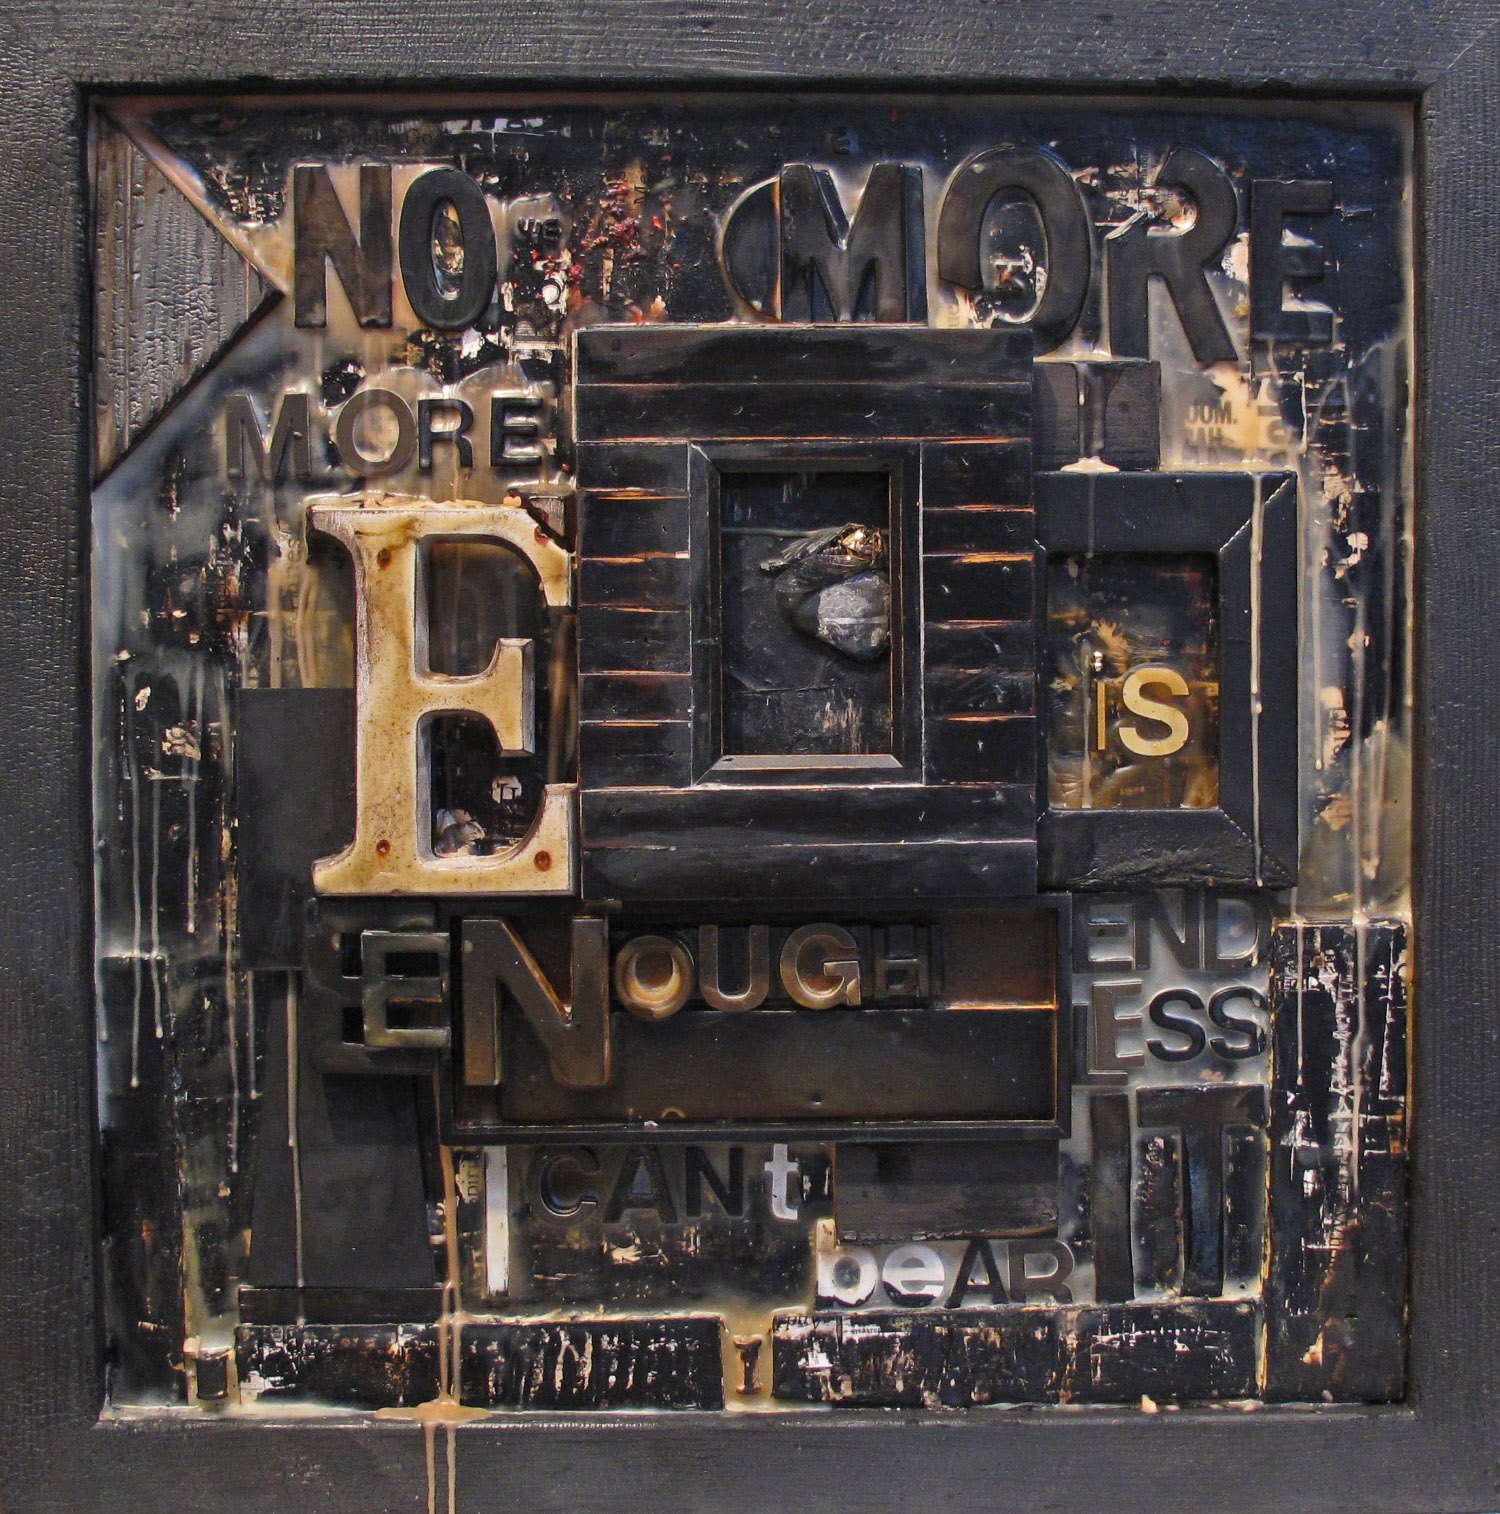 2bk(0) - Enough is Enough-wax, resins on torched wood, 22x22x3 in. 2007.jpg